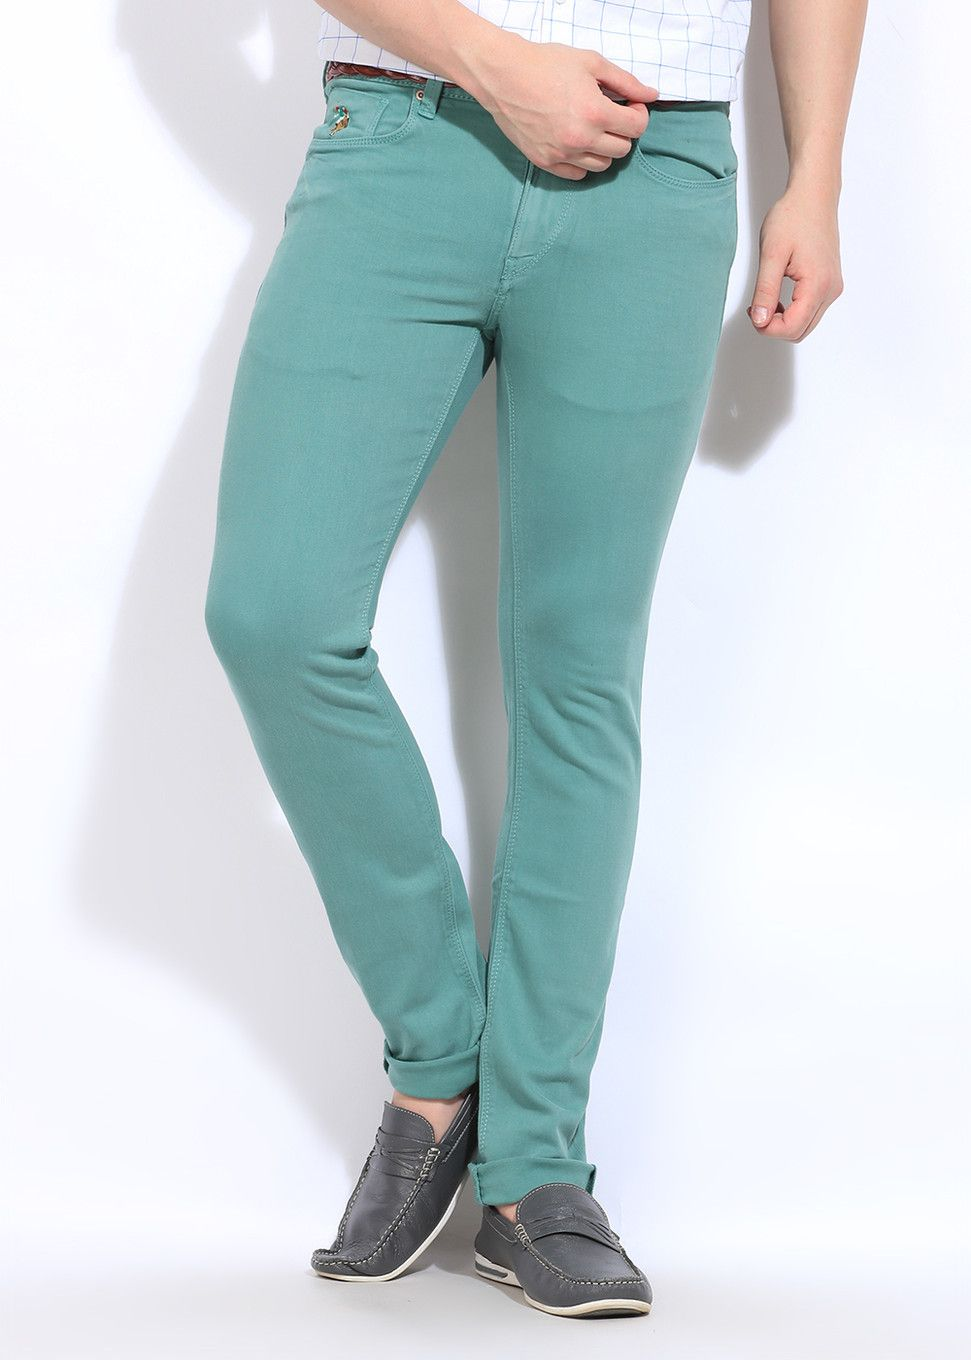 Deals offers us polo assn skinny fit mens jeans at